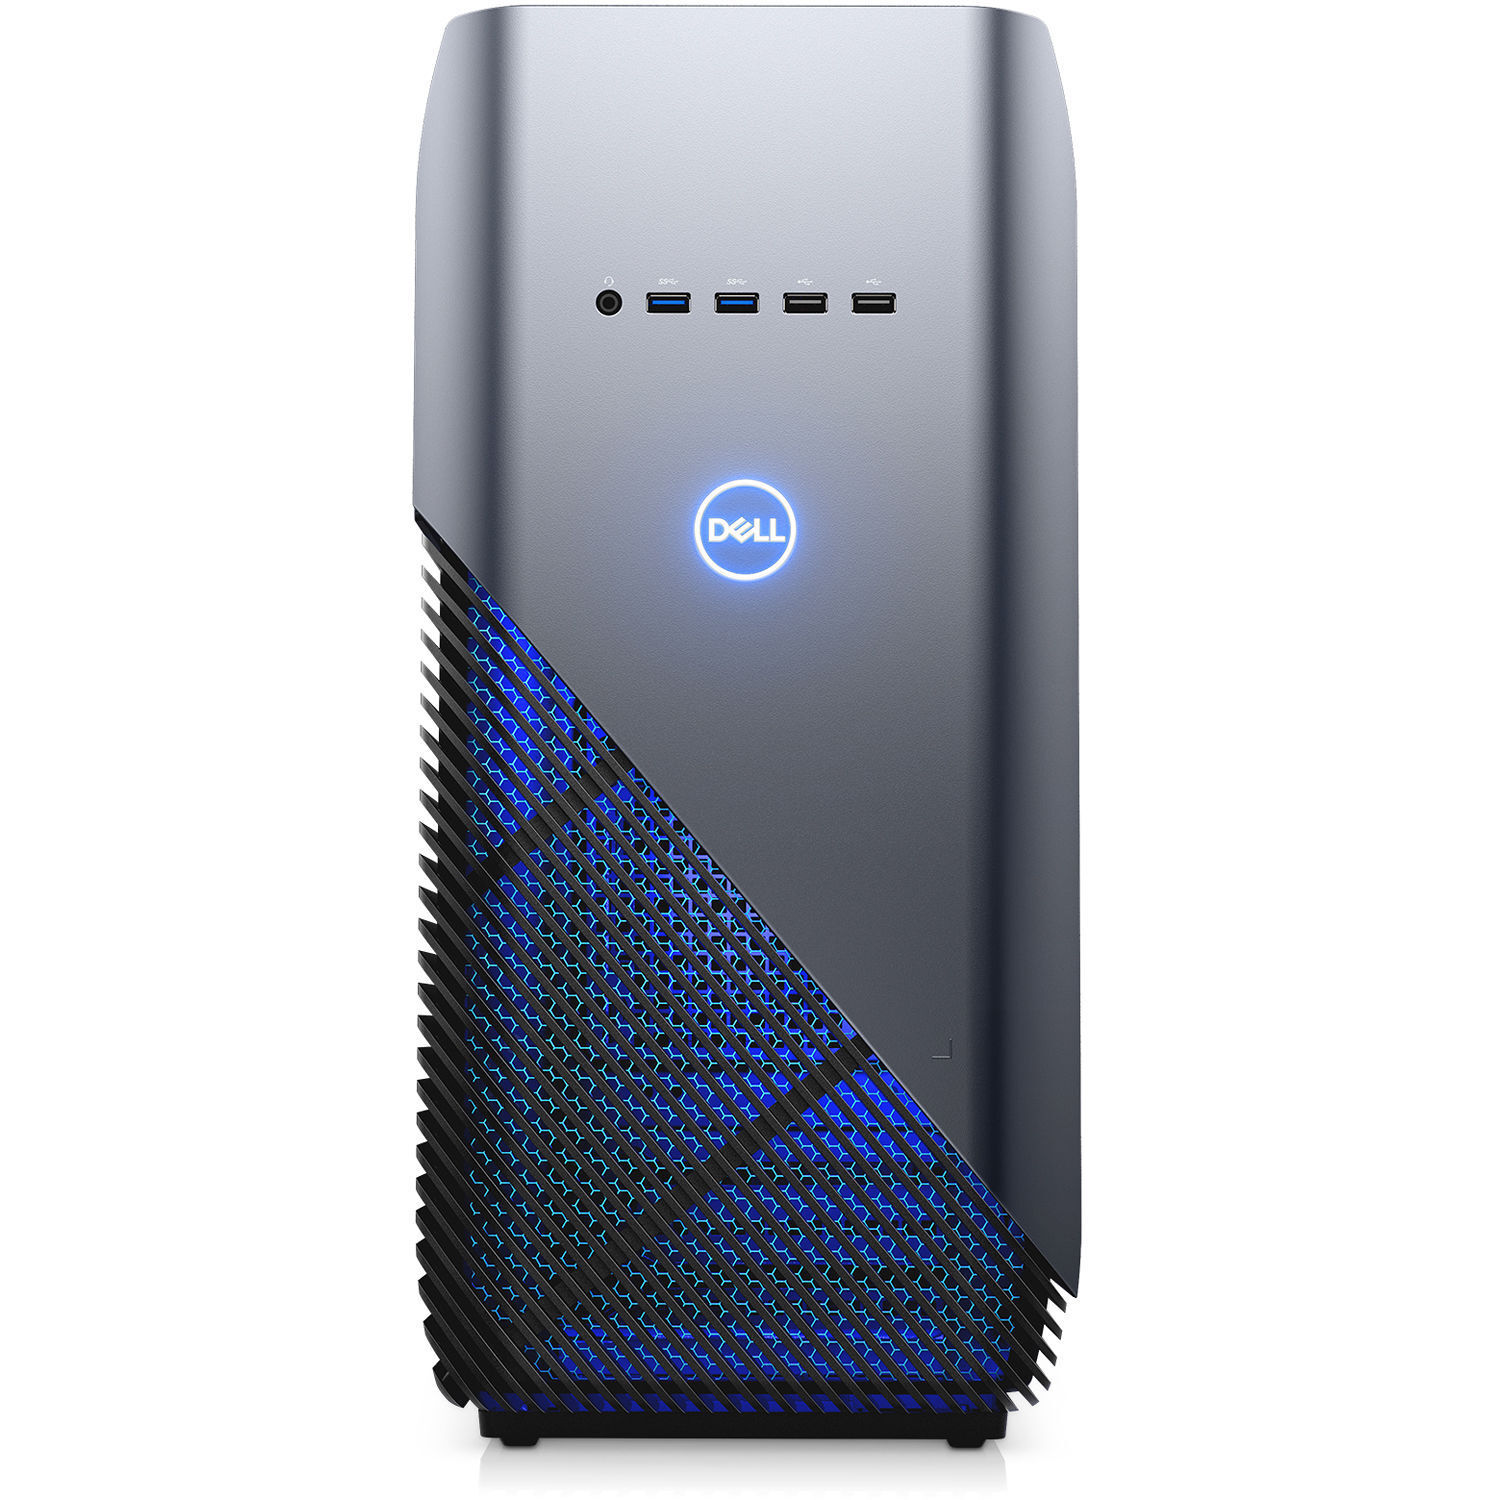 Dell Inspiron 5680 Core i7-8700 Nvidia GeForce GTX 1080 8GB